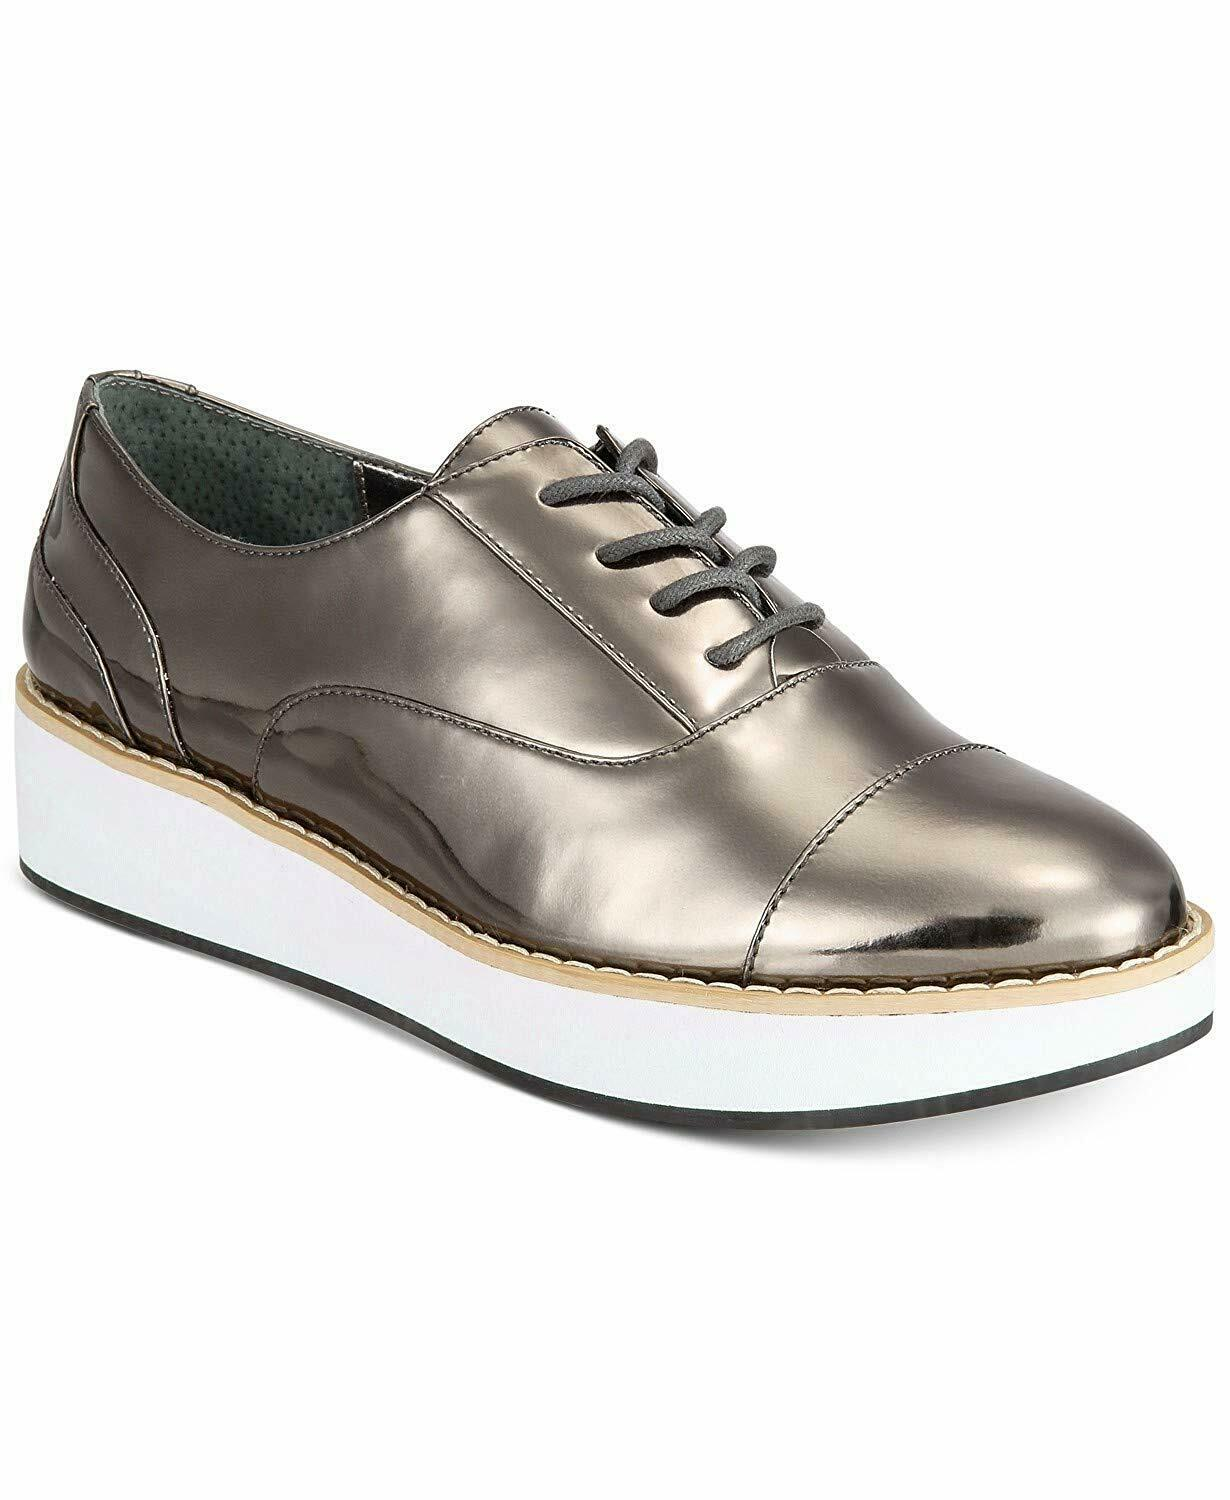 Bar III Womens Dabney lace-Up Platform Oxfords (Pewter, 7.5)